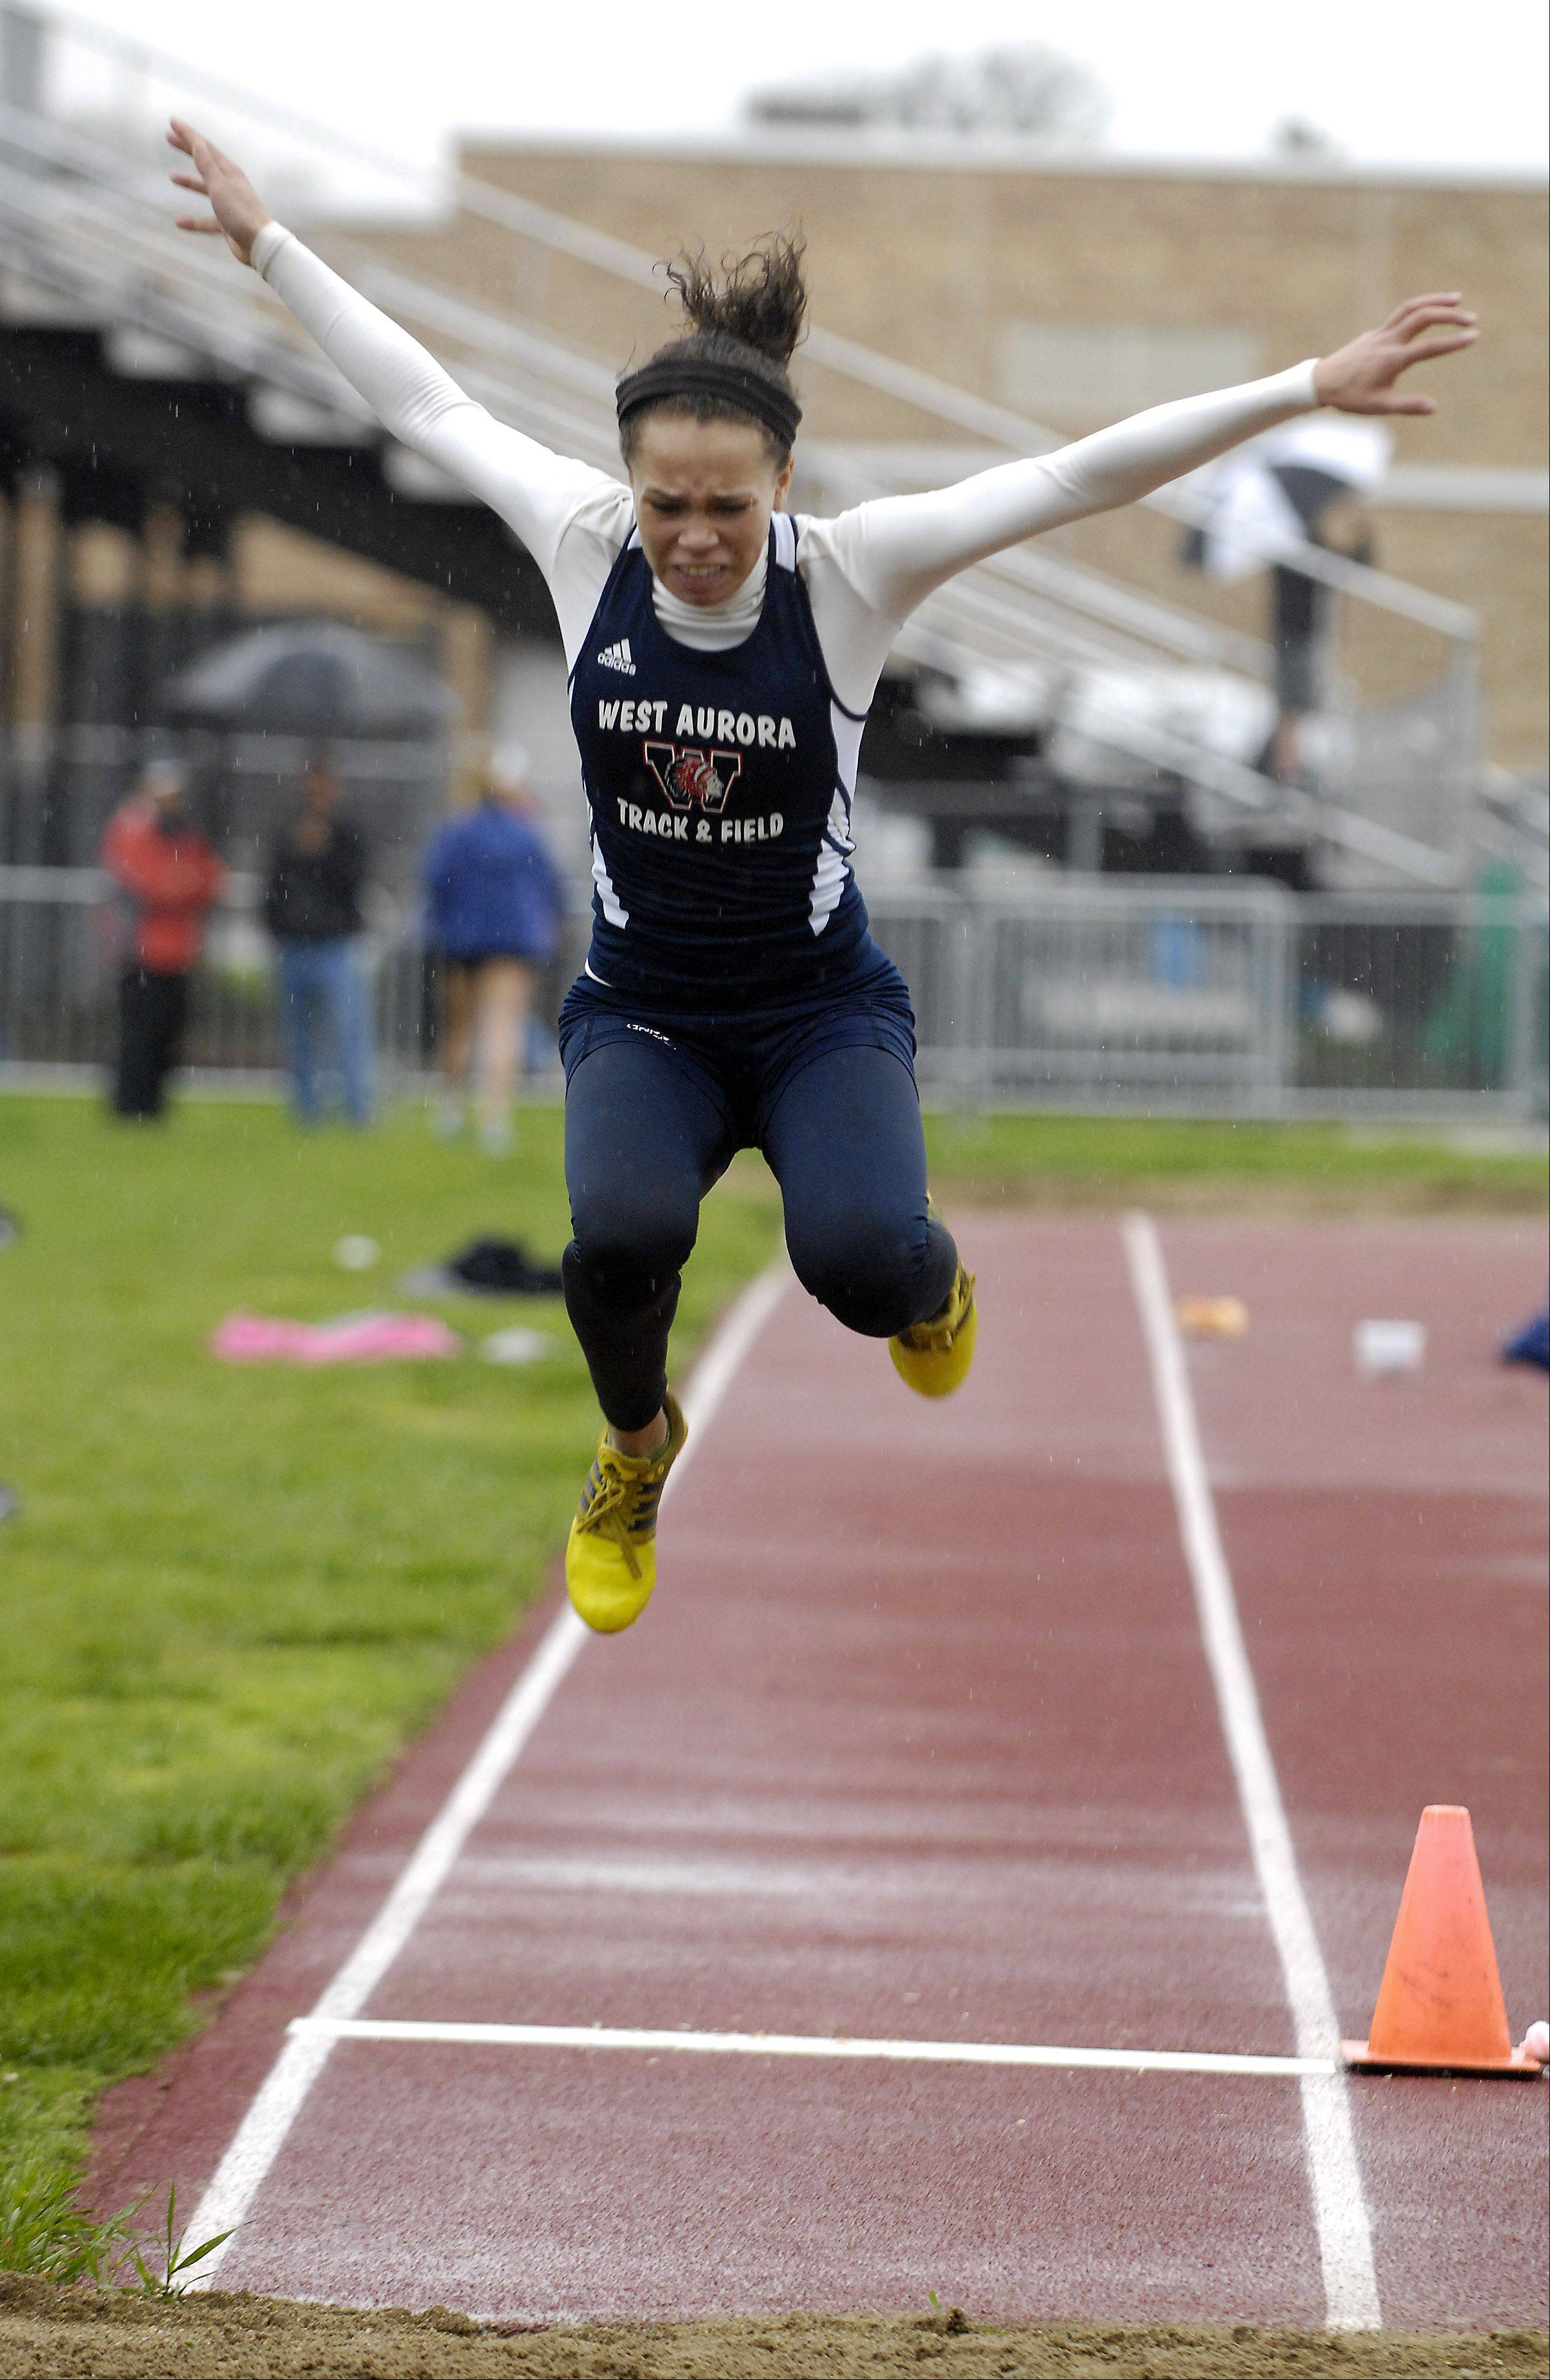 Kyla Walton of West Aurora competes in the long jump during the West Aurora girl's track sectional Thursday.